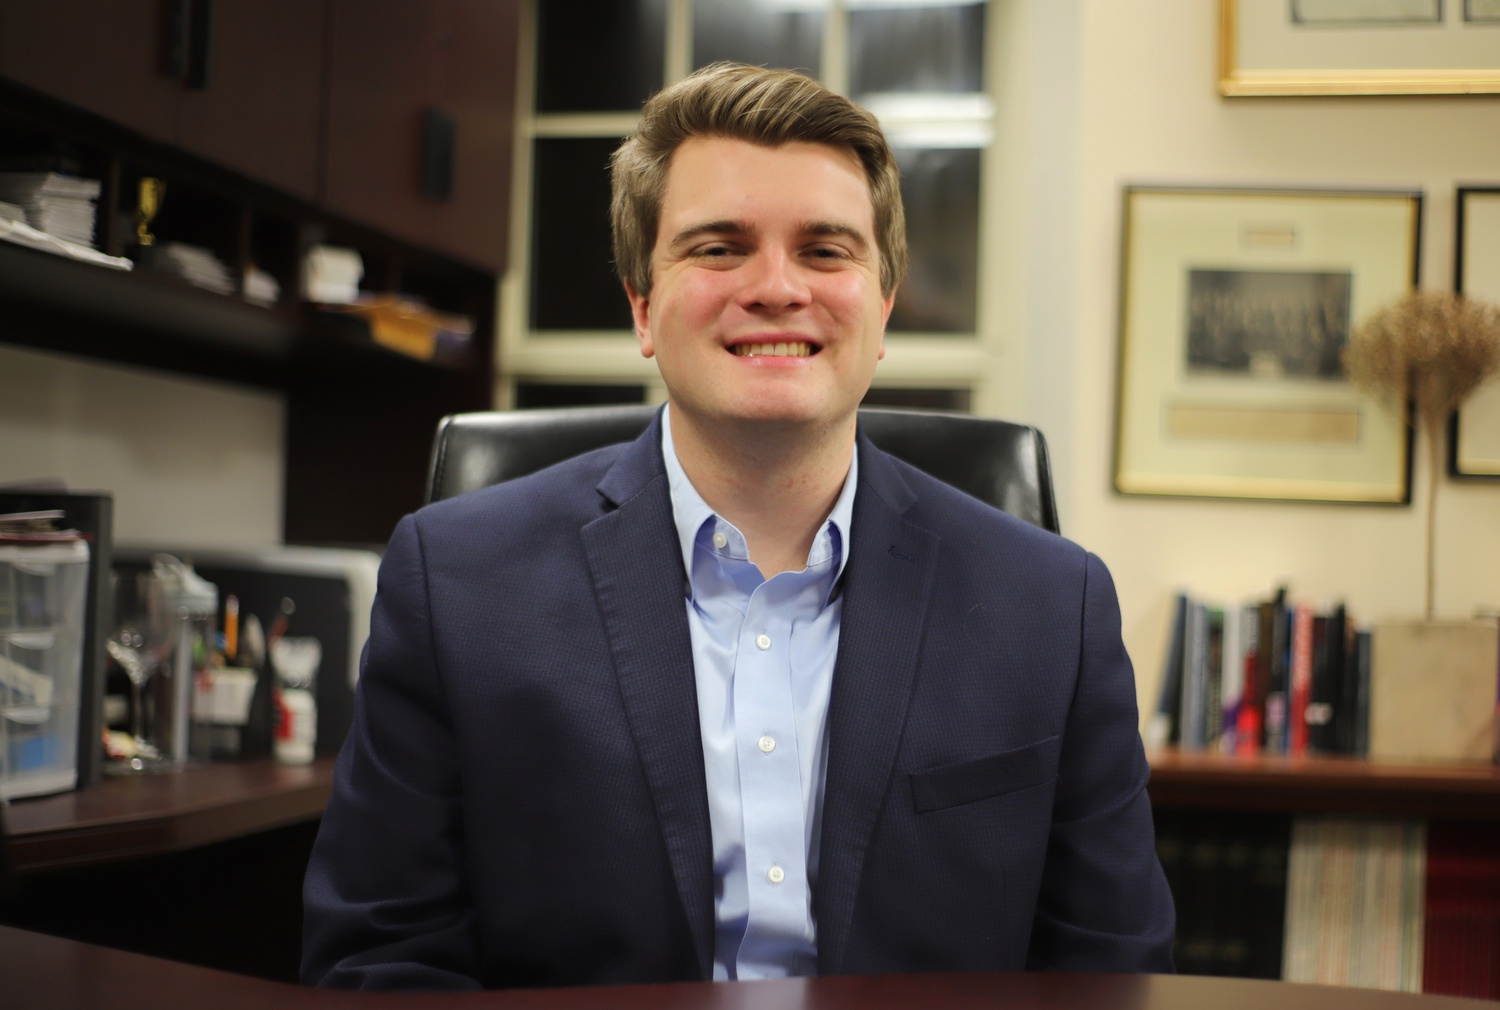 Aidan F. Ryan '21 has been named the President of the 147th Guard of The Harvard Crimson.